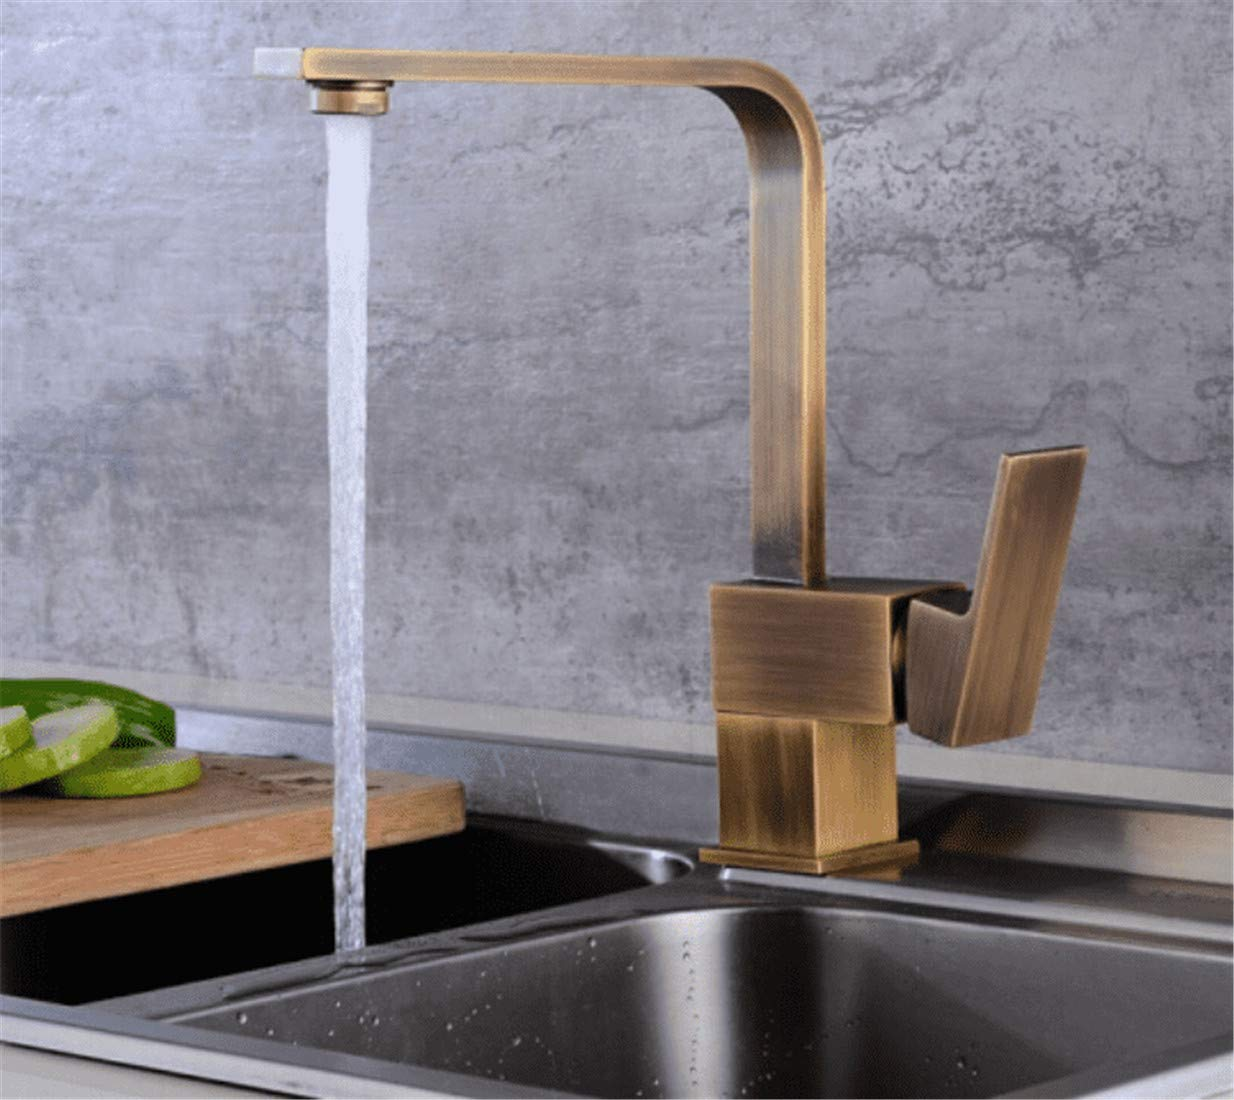 F Mucert Tap,All Copper,Hot and Cold Water,Bathroom Basin Faucet,European redating Faucet,C